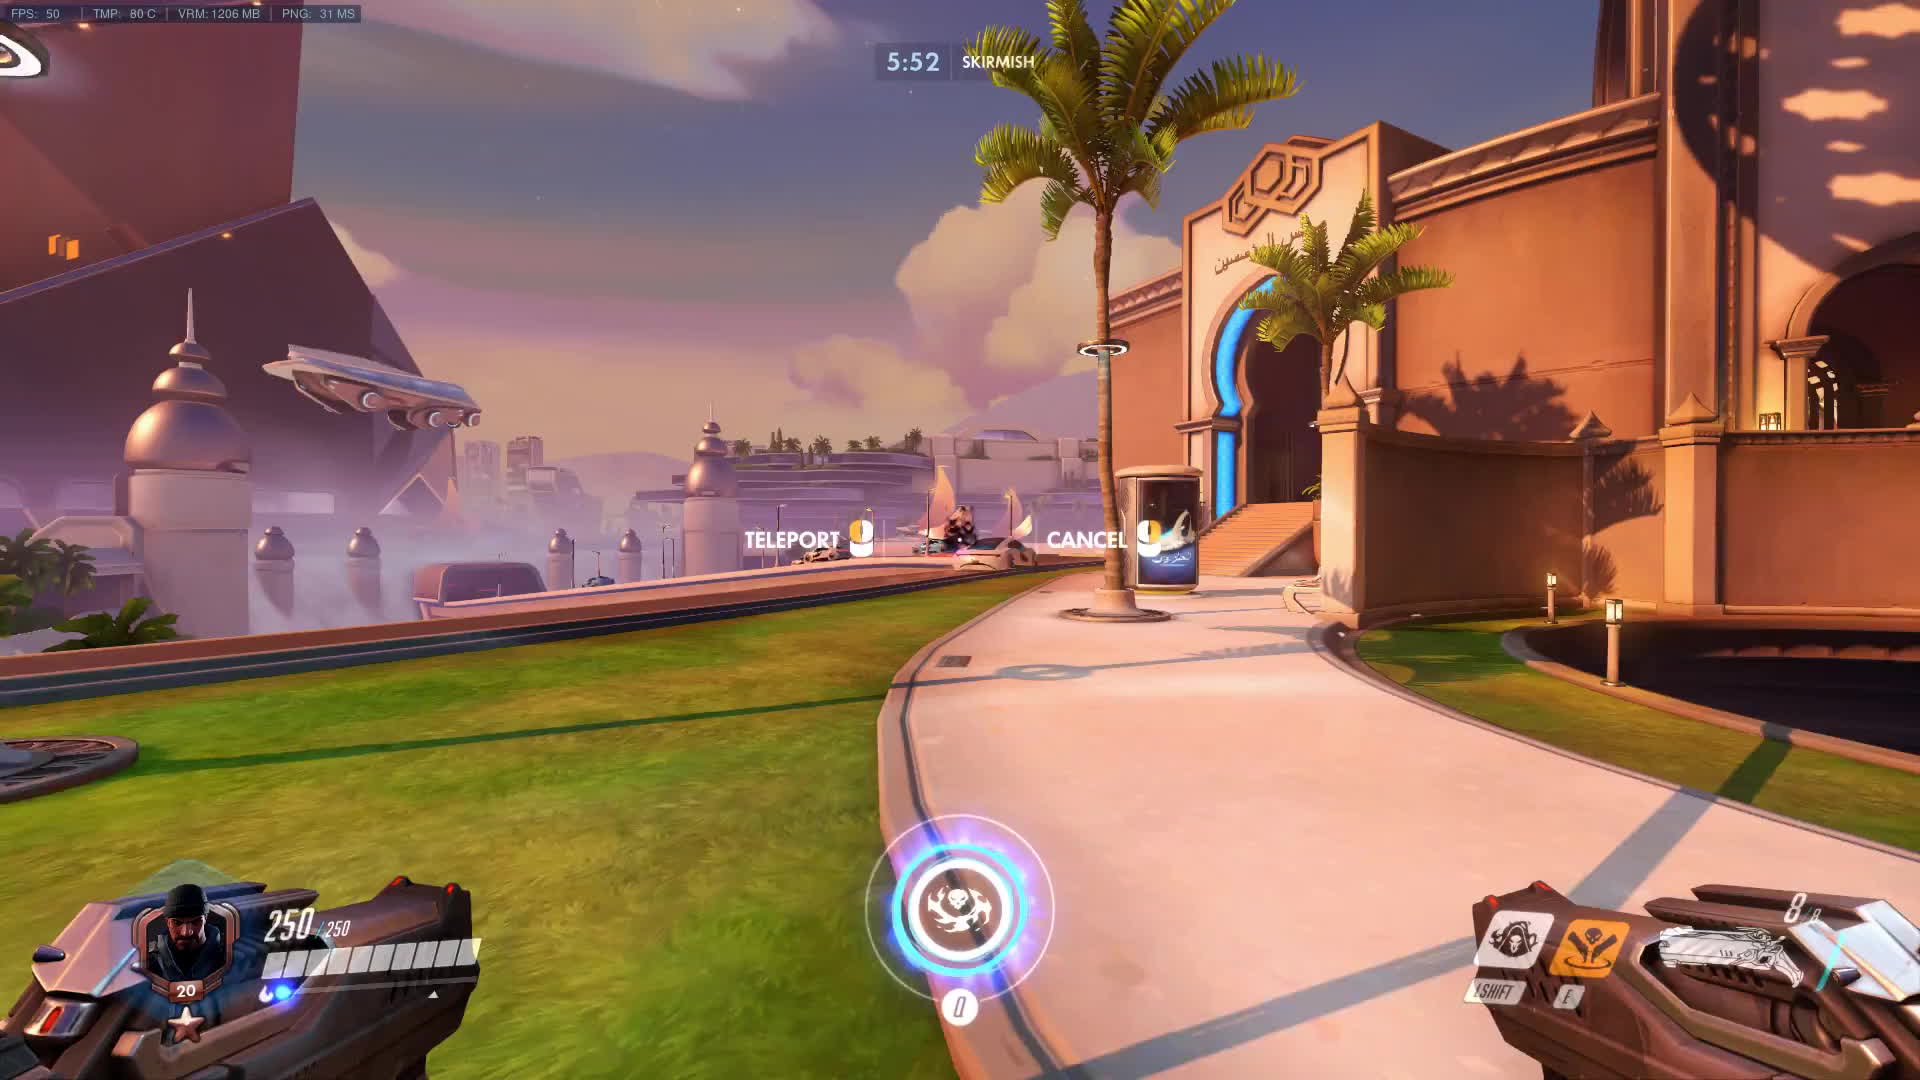 overwatch, Oasis reaper memes GIFs